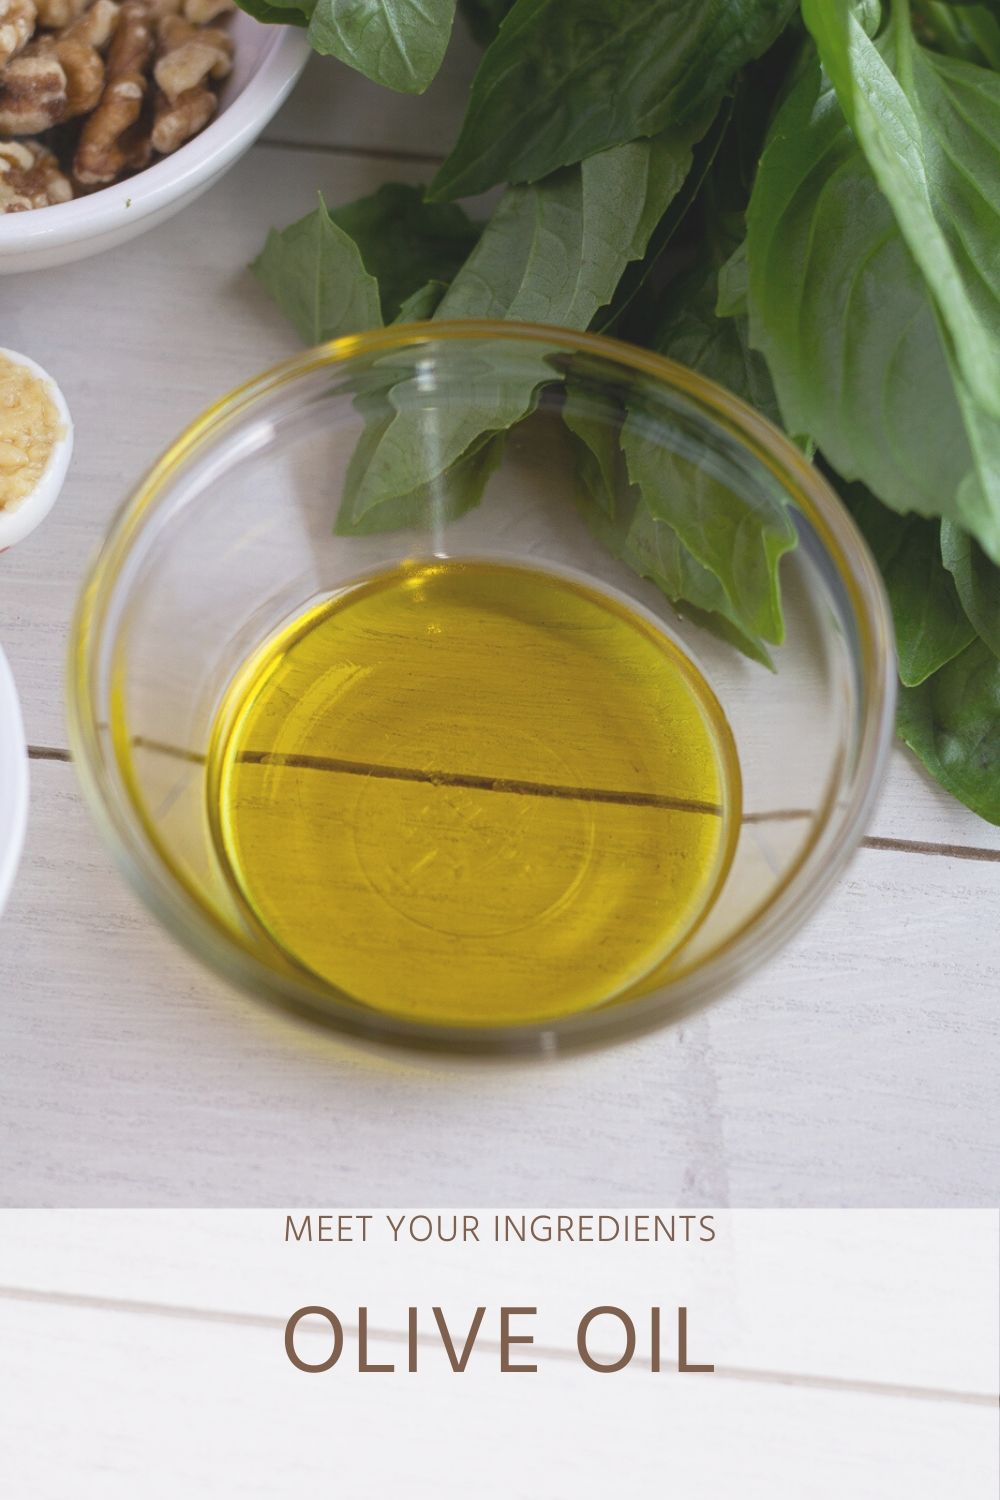 Meet Your Ingredients: Olive Oil